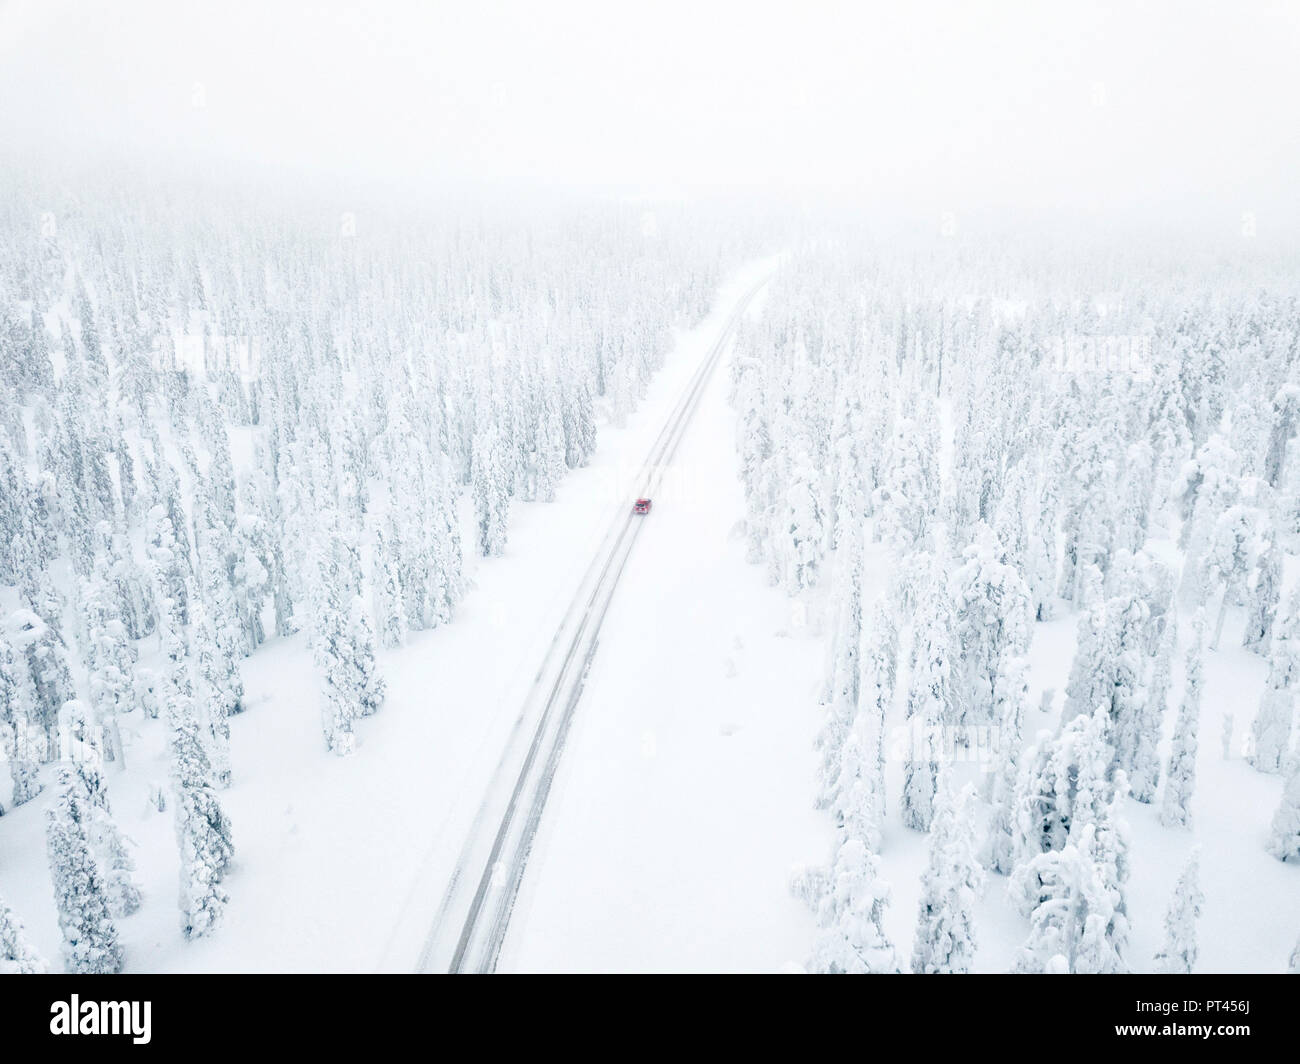 Aerial view of car along the snowy road in the icy forest, Pallas-Yllastunturi National Park, Muonio, Lapland, Finland - Stock Image